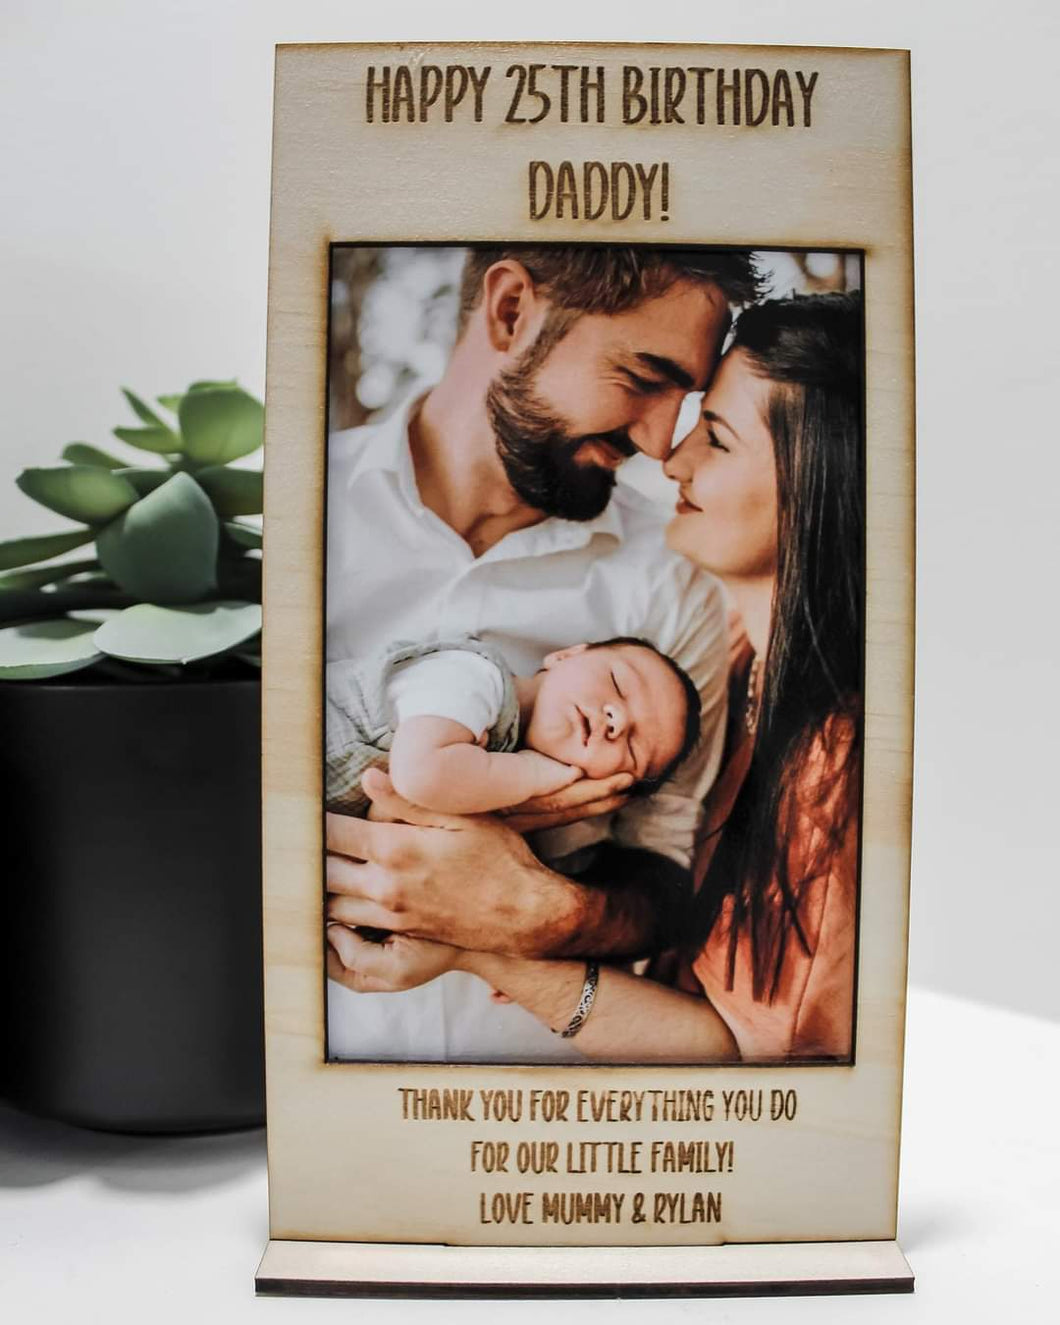 Personilsed photo frame!